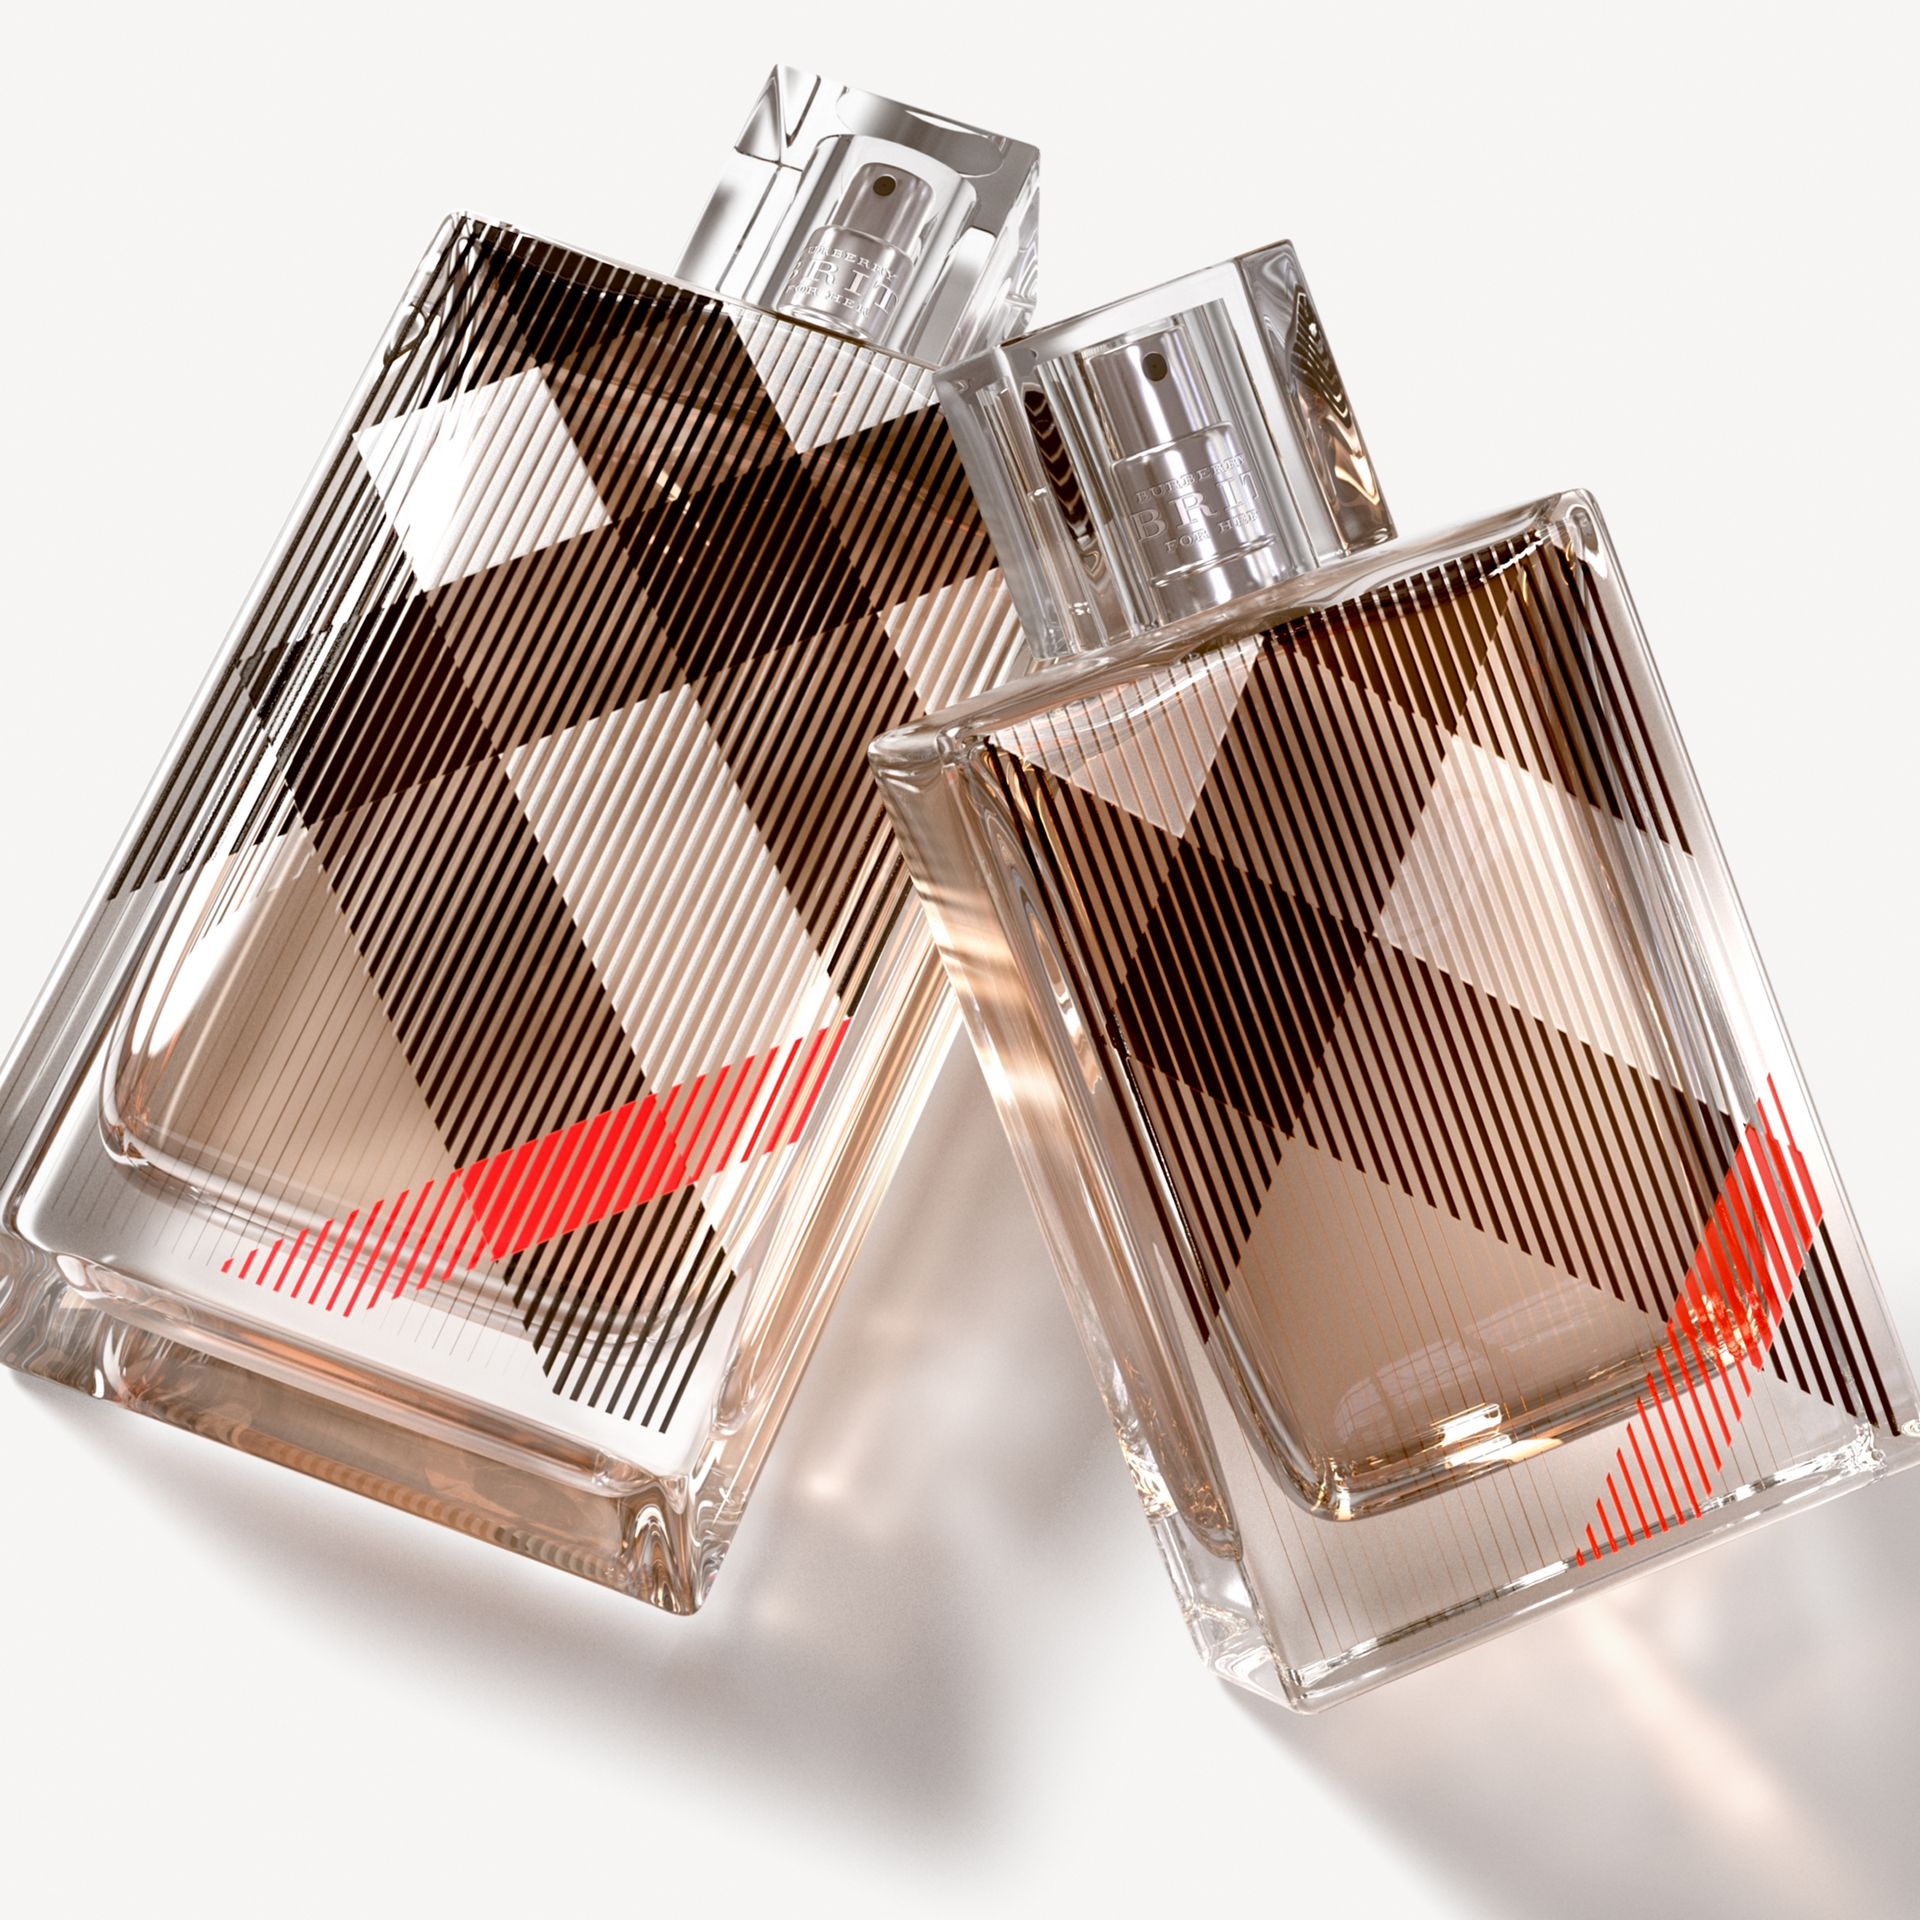 Burberry Brit For Her Eau de Parfum 100ml - Women | Burberry Hong Kong S.A.R - gallery image 1